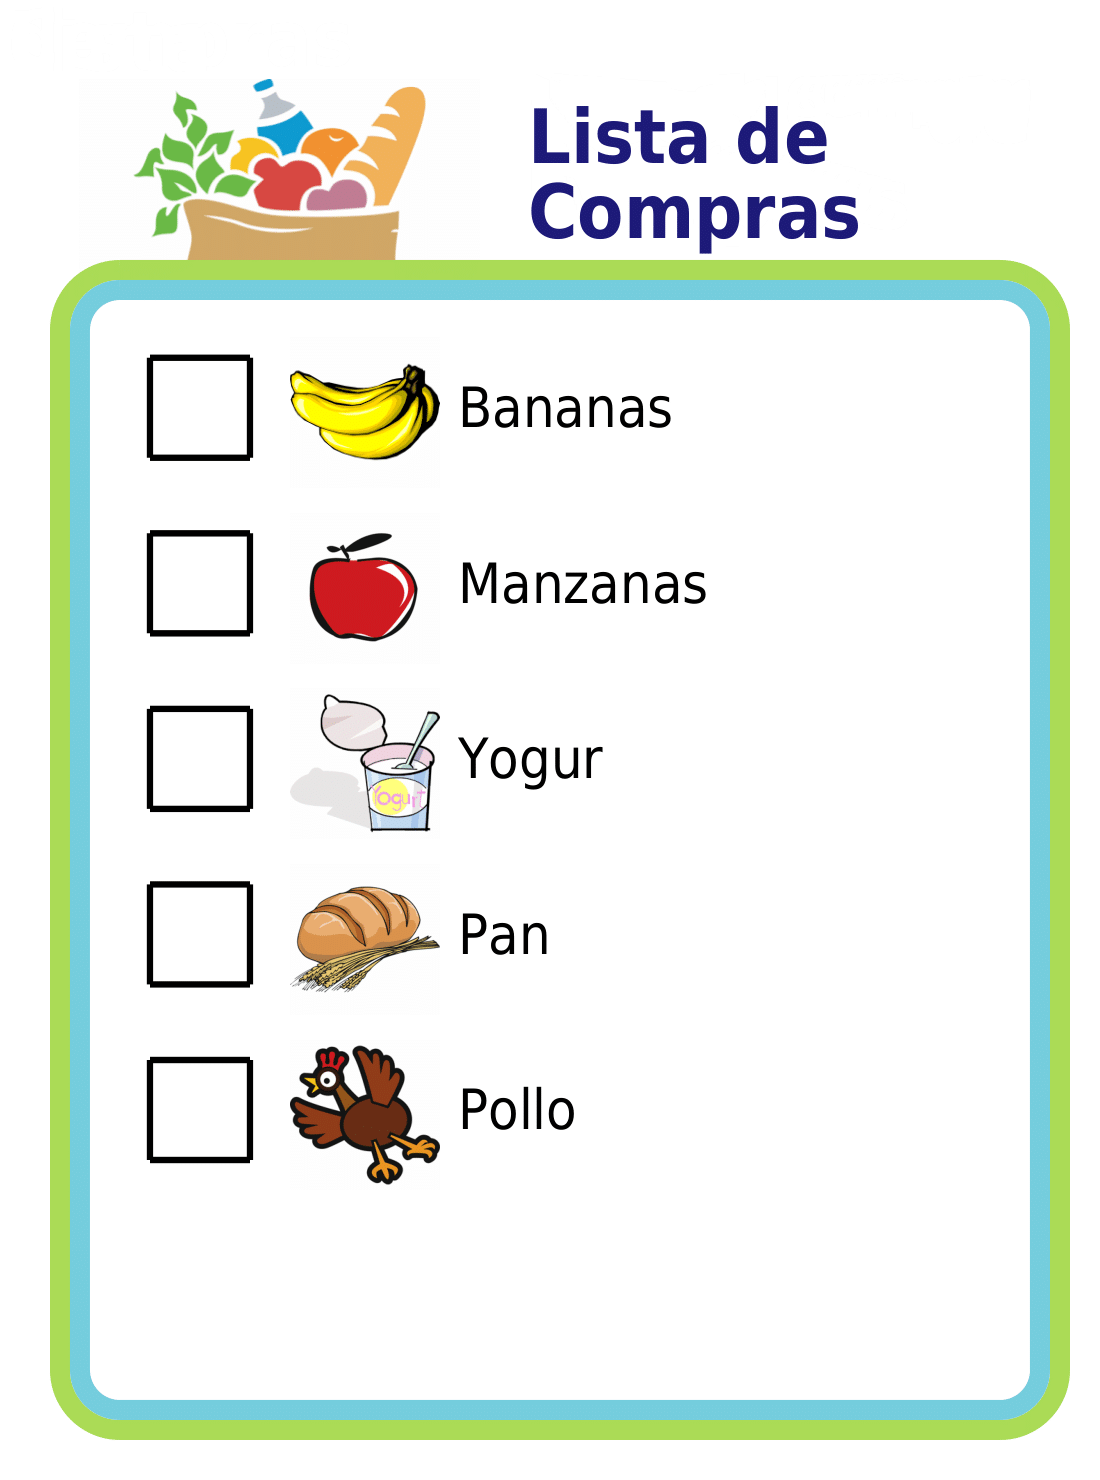 Practice a foreign language at the grocery store! You can edit the text next to the pictures to practice any language you like.